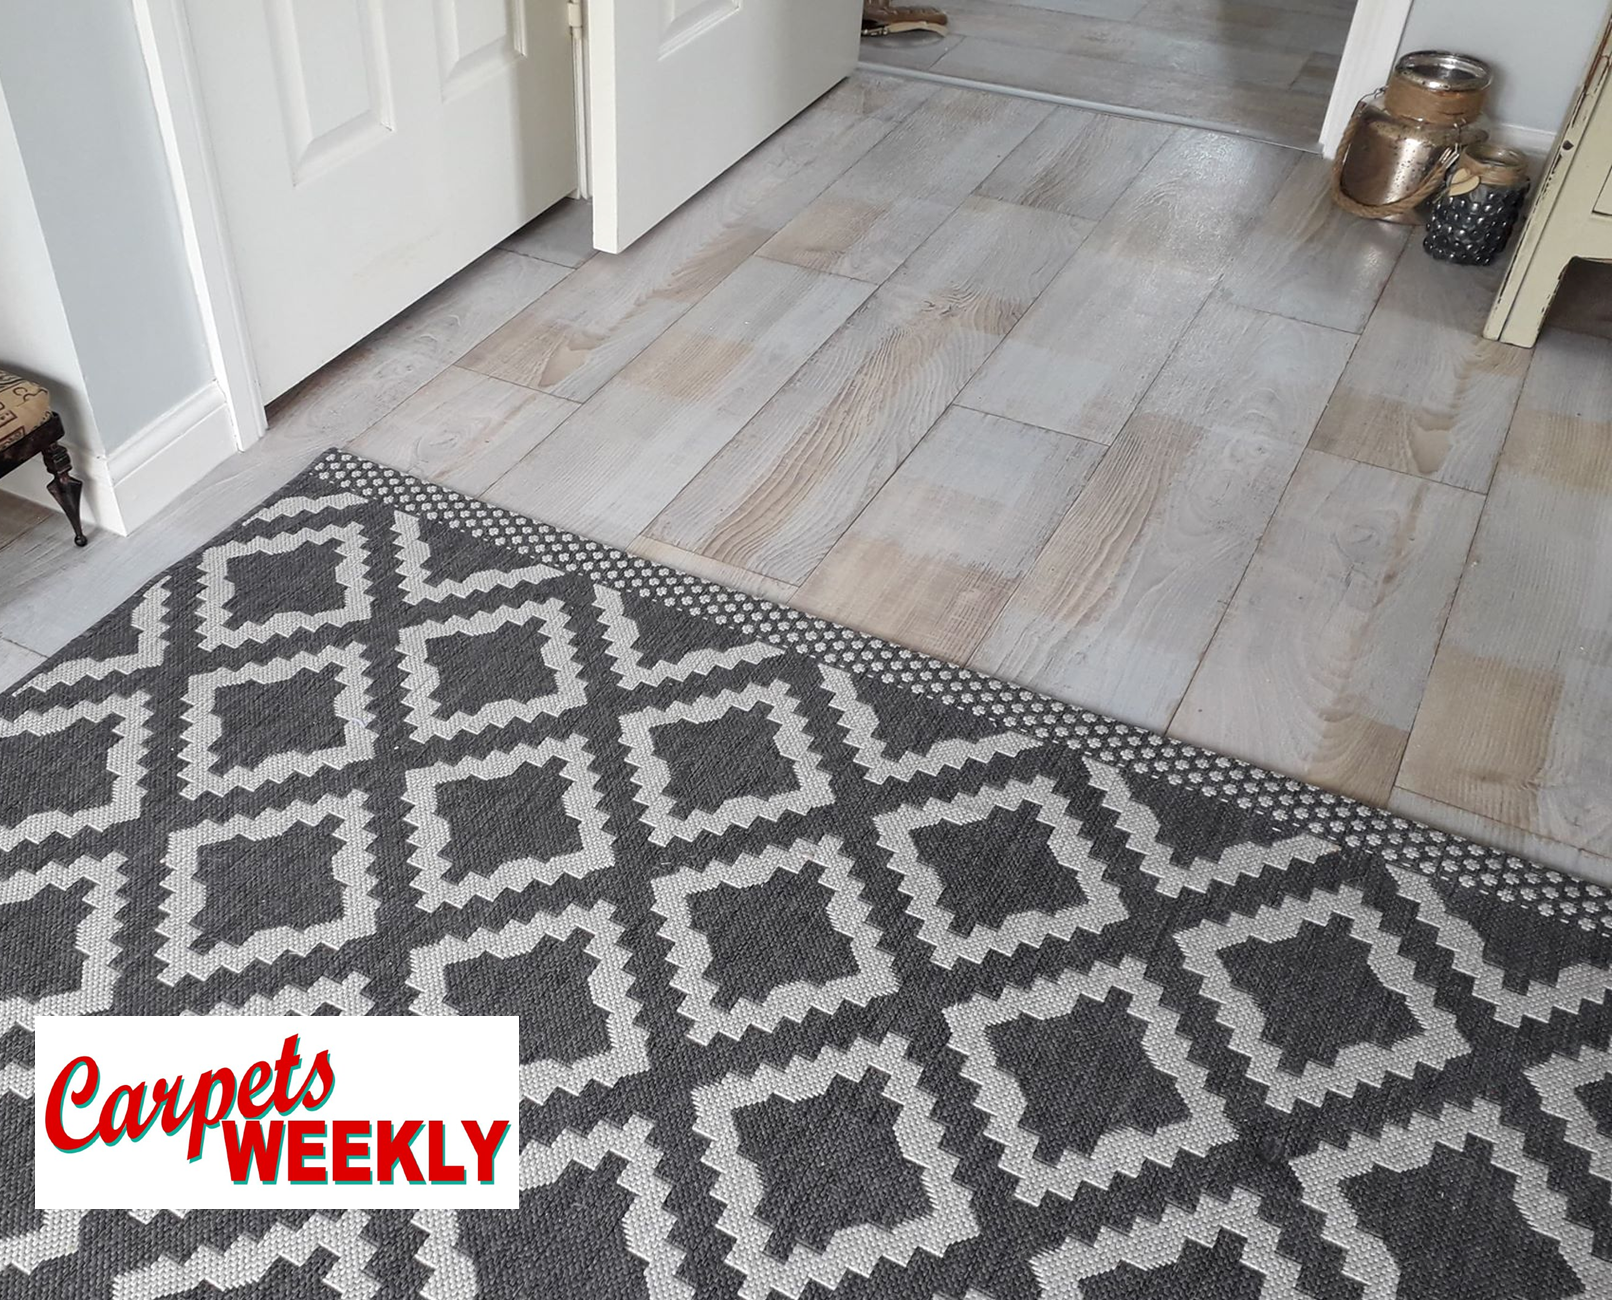 Carpets WeeklyEverest Vinyl Flooringel with Grey Oak laminate Combi 1